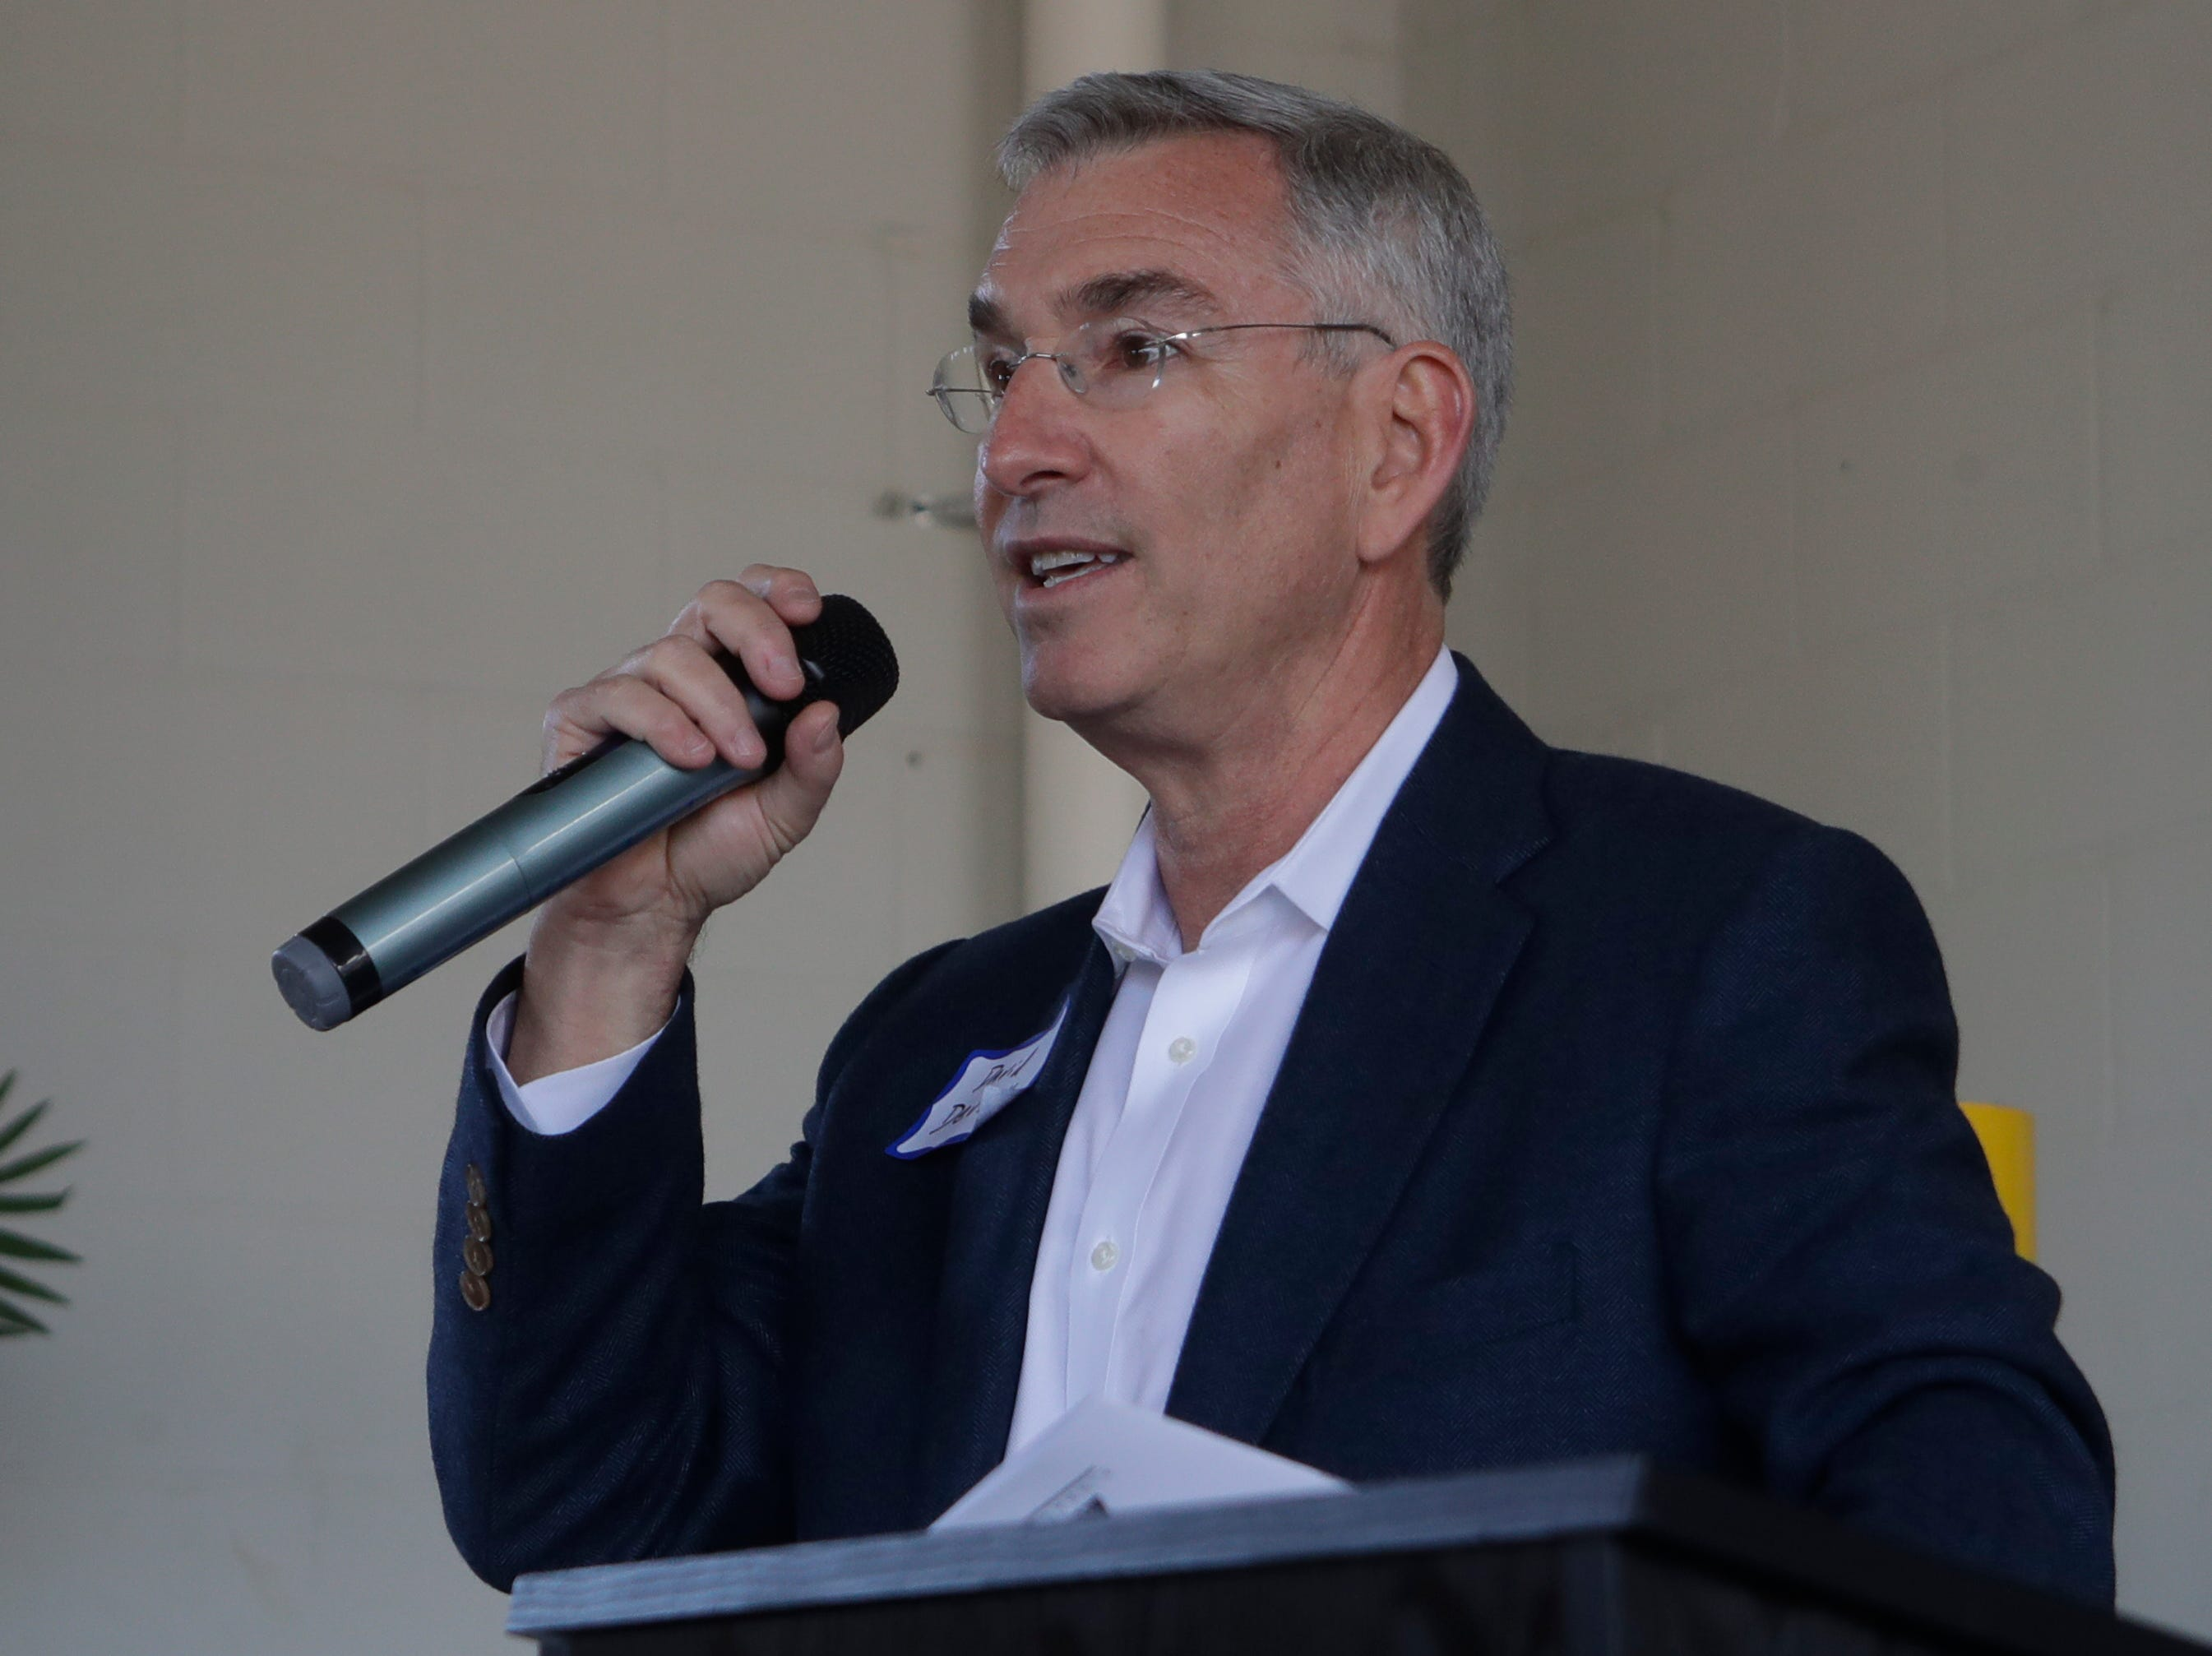 David Deutch, partner at Pinnacle Housing Group speaks during the grand opening celebration for the Casañas Village Apartments at Frenchtown Square Thursday, Jan. 31, 2019.